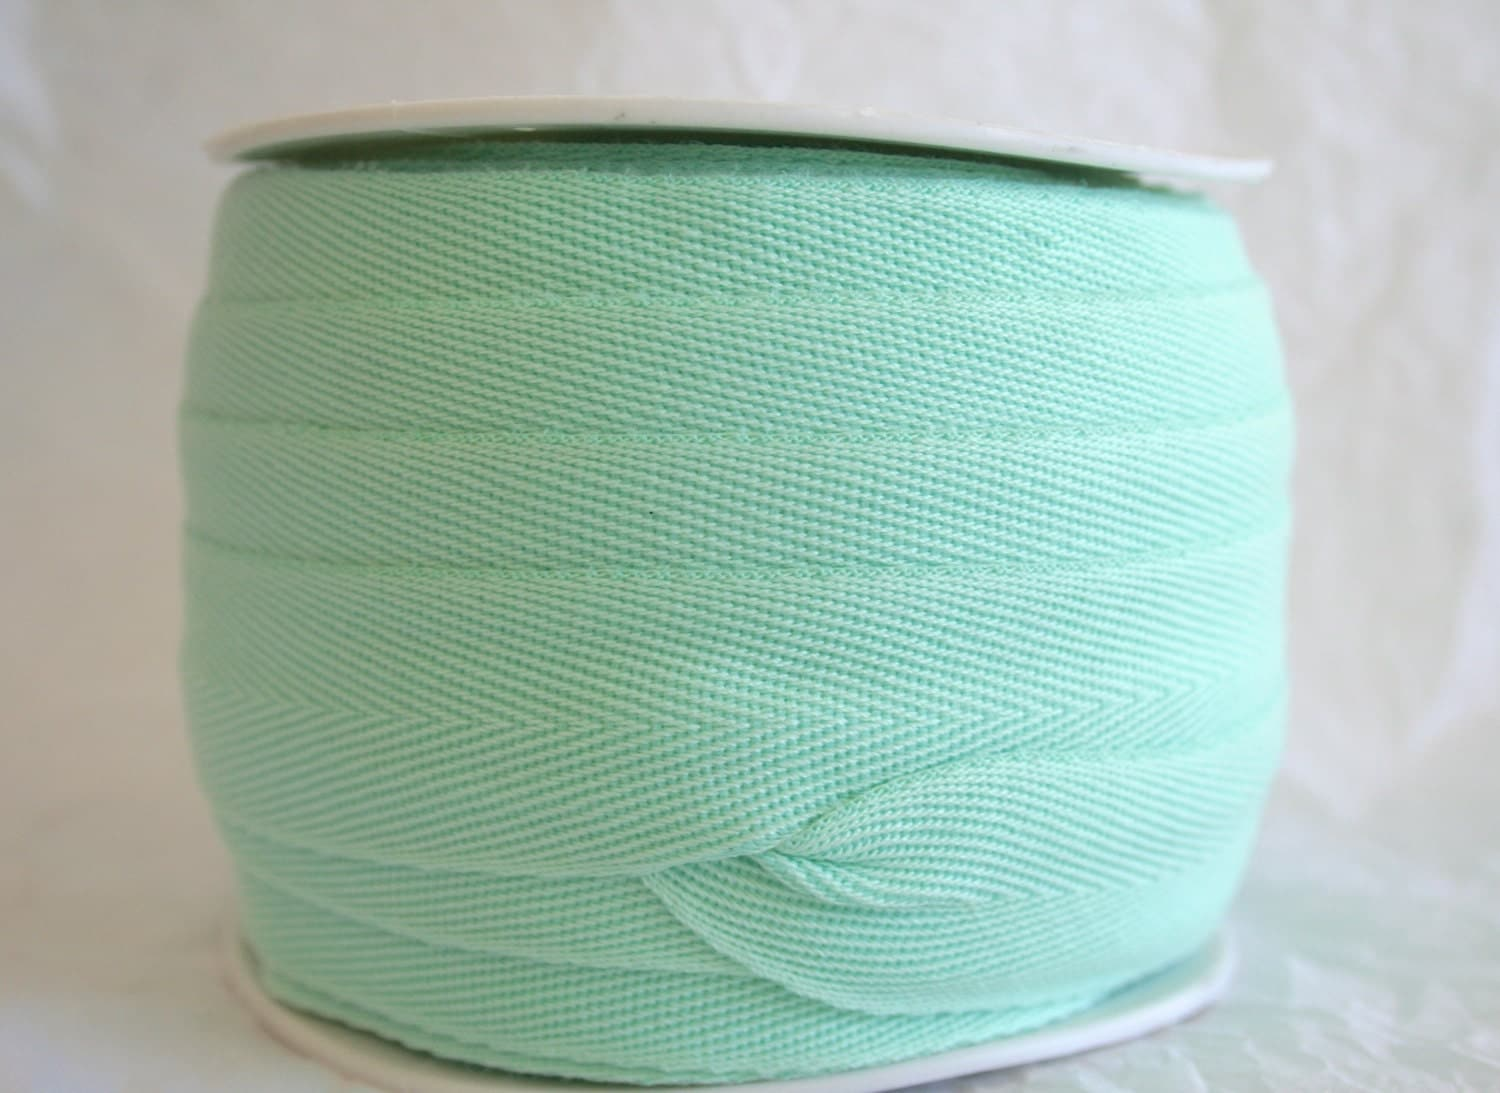 White apron tape - Sold By Swoonpartyshop